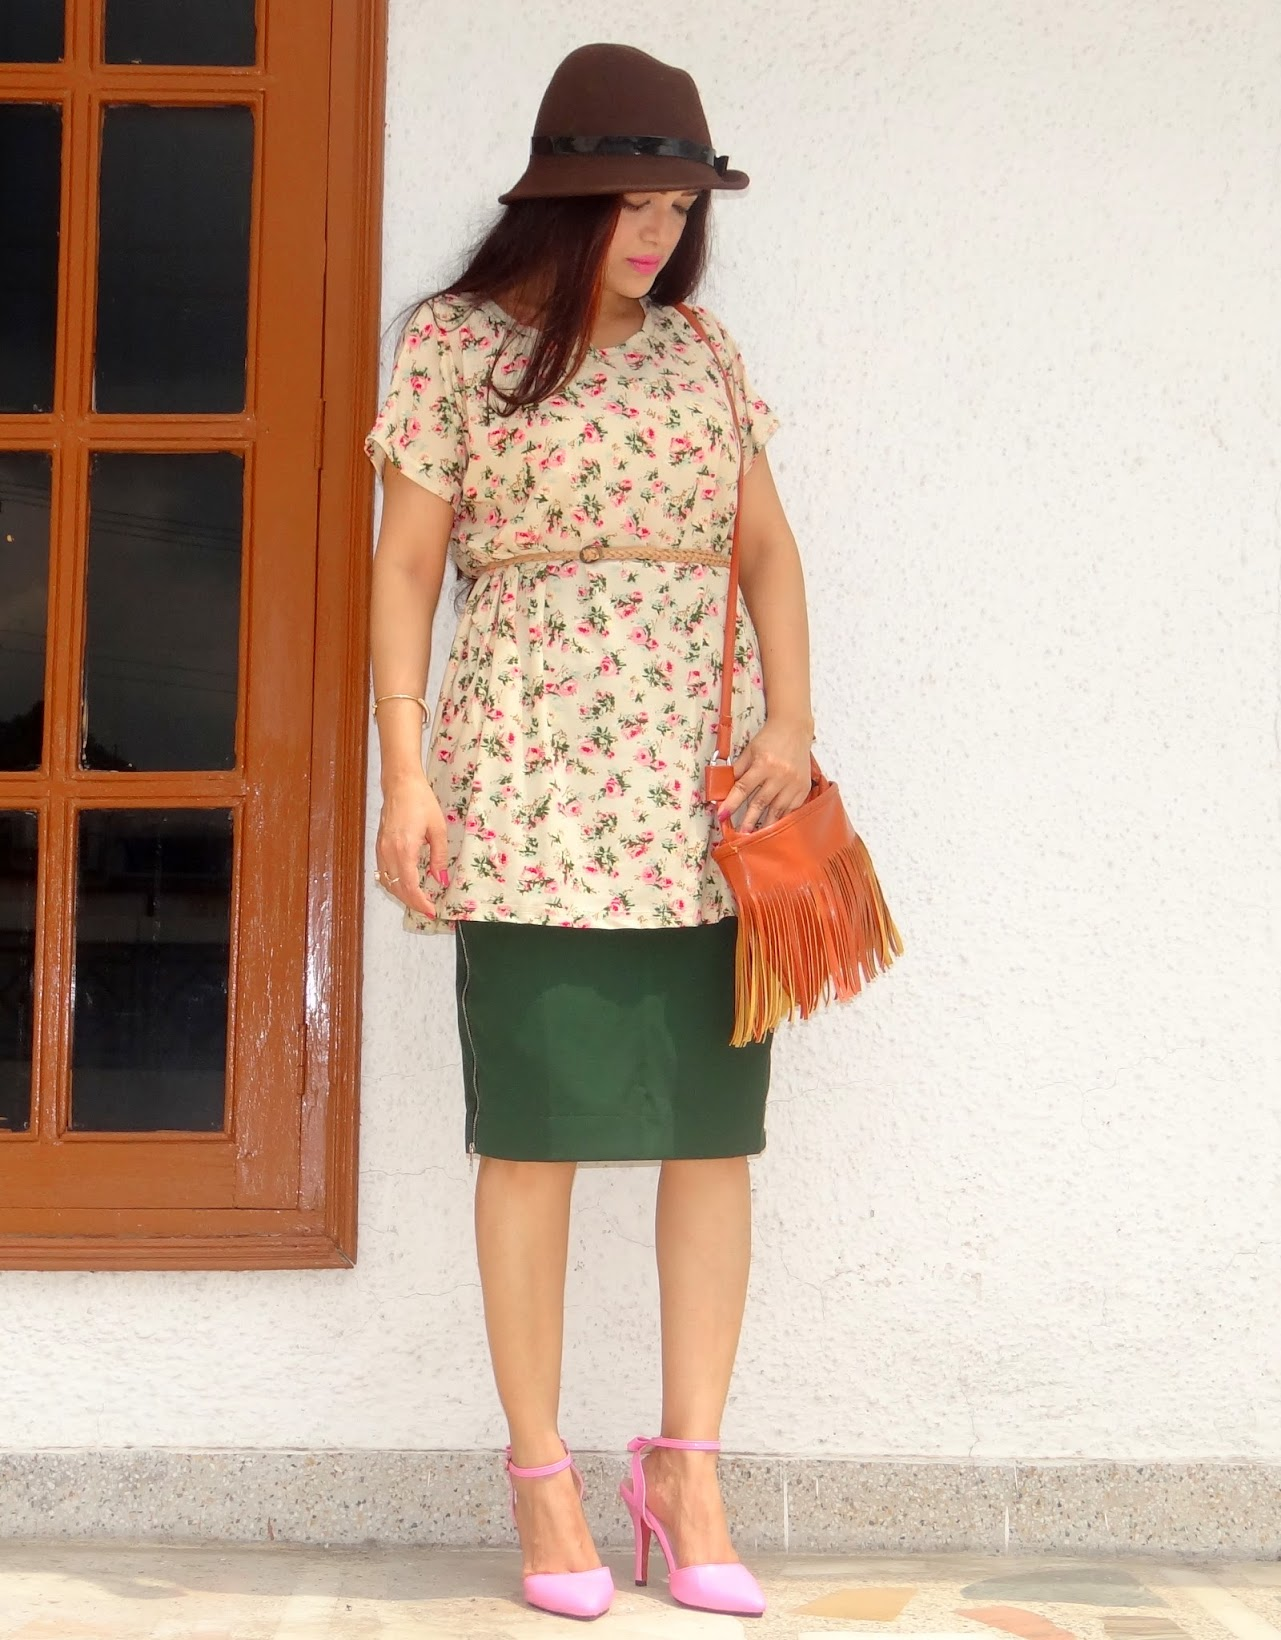 Styling an oversized floral top- OOTD, Dresslink, Stylemoi, Indian fashion blogger, Chamber of Beauty